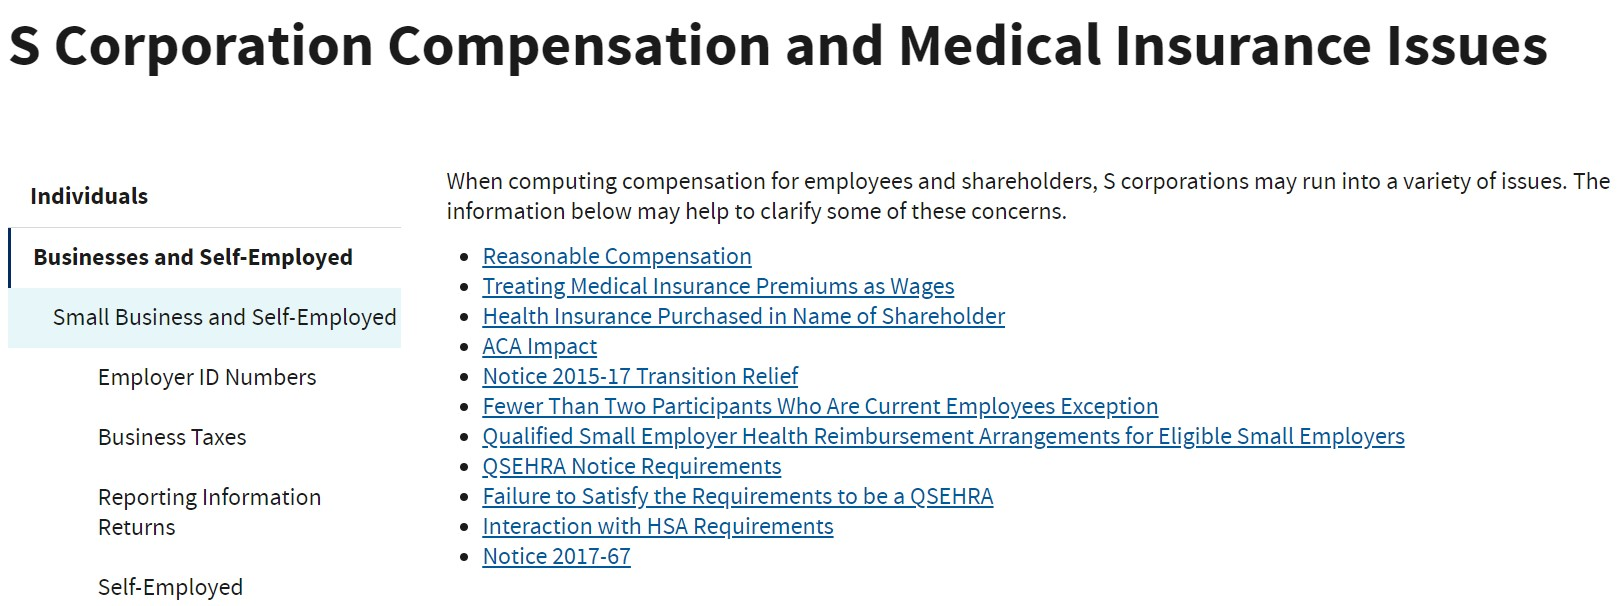 S Corporation Compensation and Medical Insurance Issues